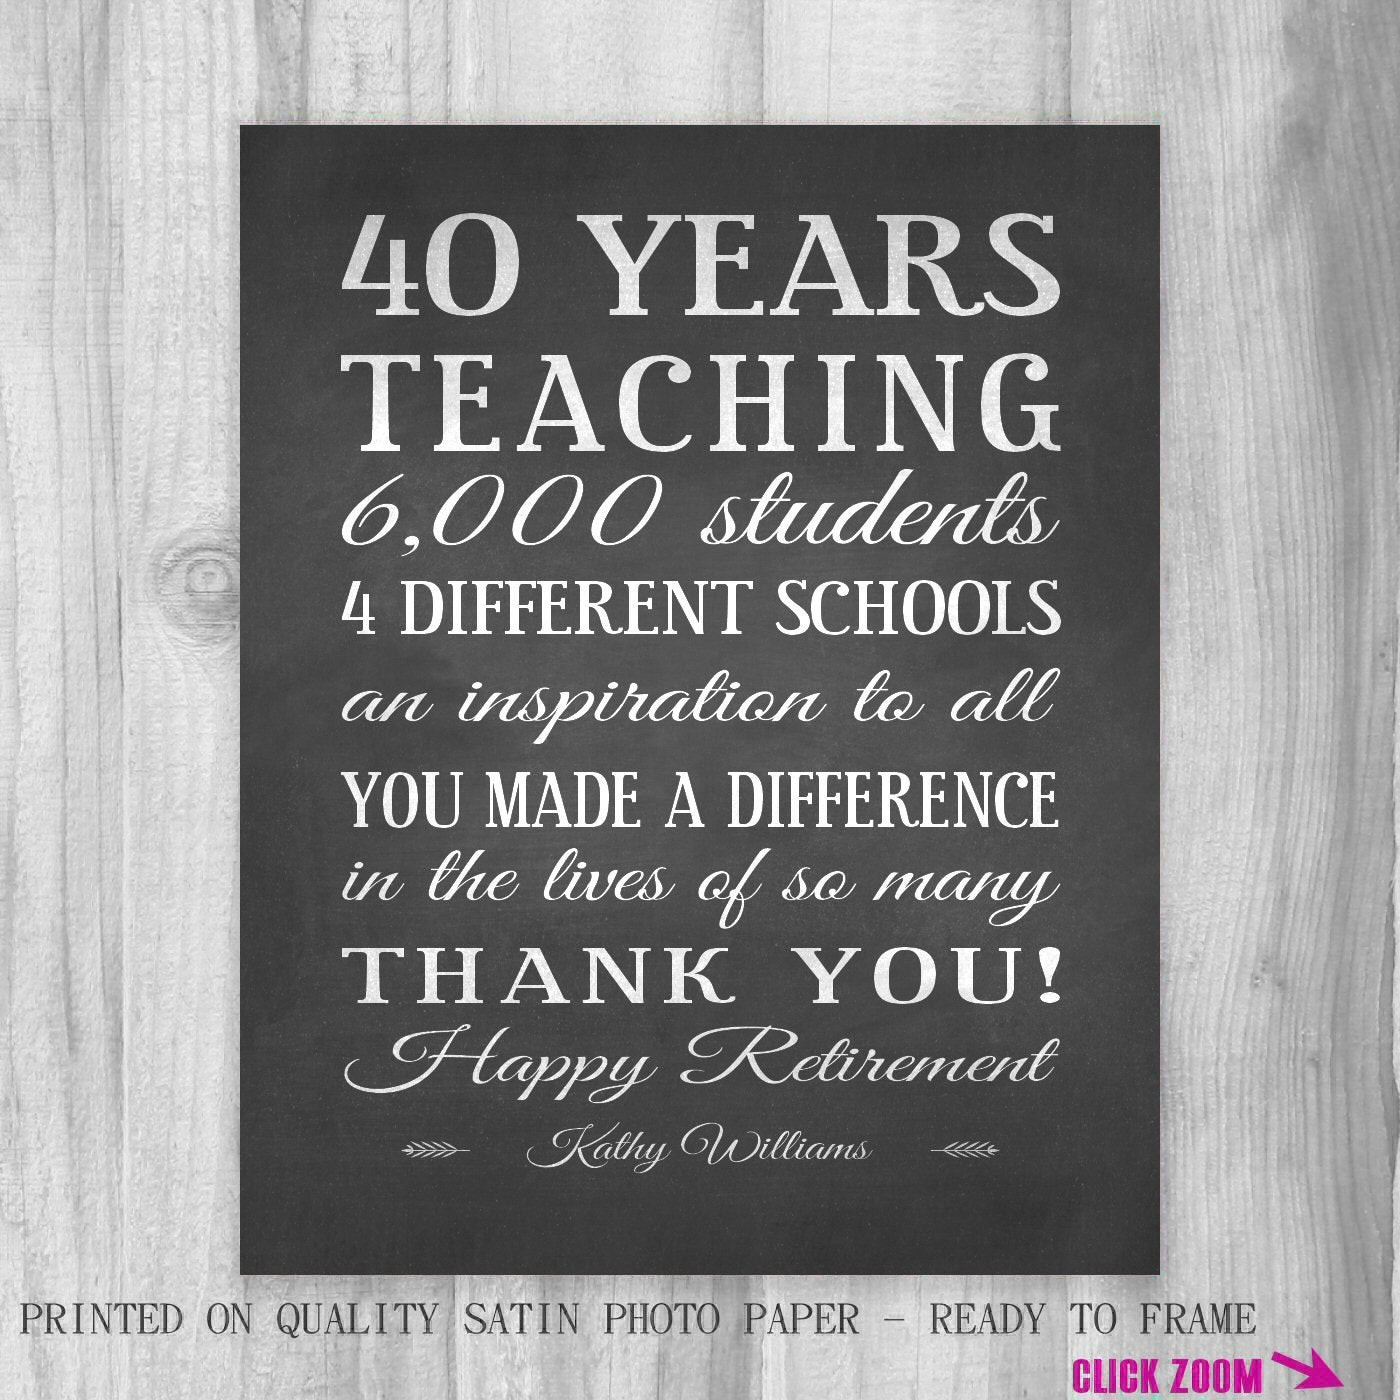 Best ideas about Teachers Retirement Gift Ideas . Save or Pin Teachers Gift RETIREMENT Unique Personalized e of a Kind Now.